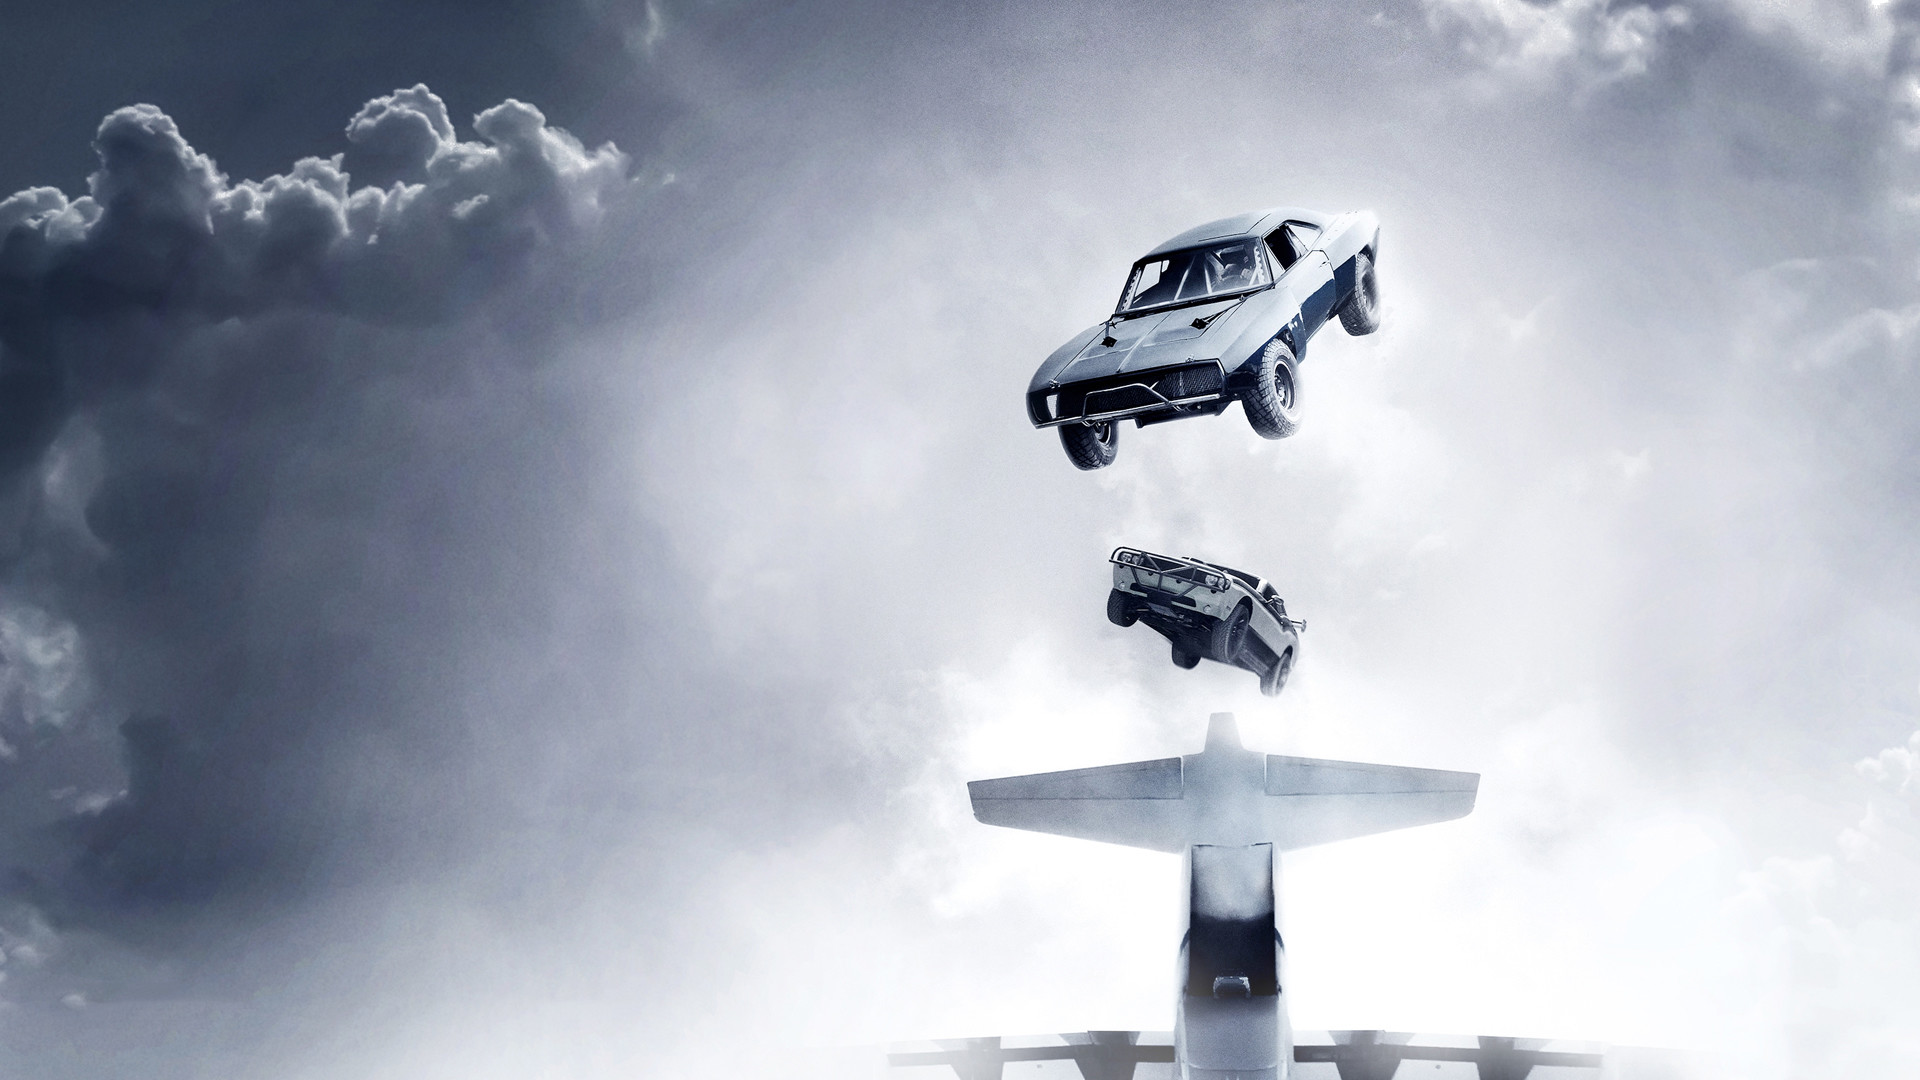 Fast and furious 7 wallpapers 75 images - Furious 8 wallpaper ...